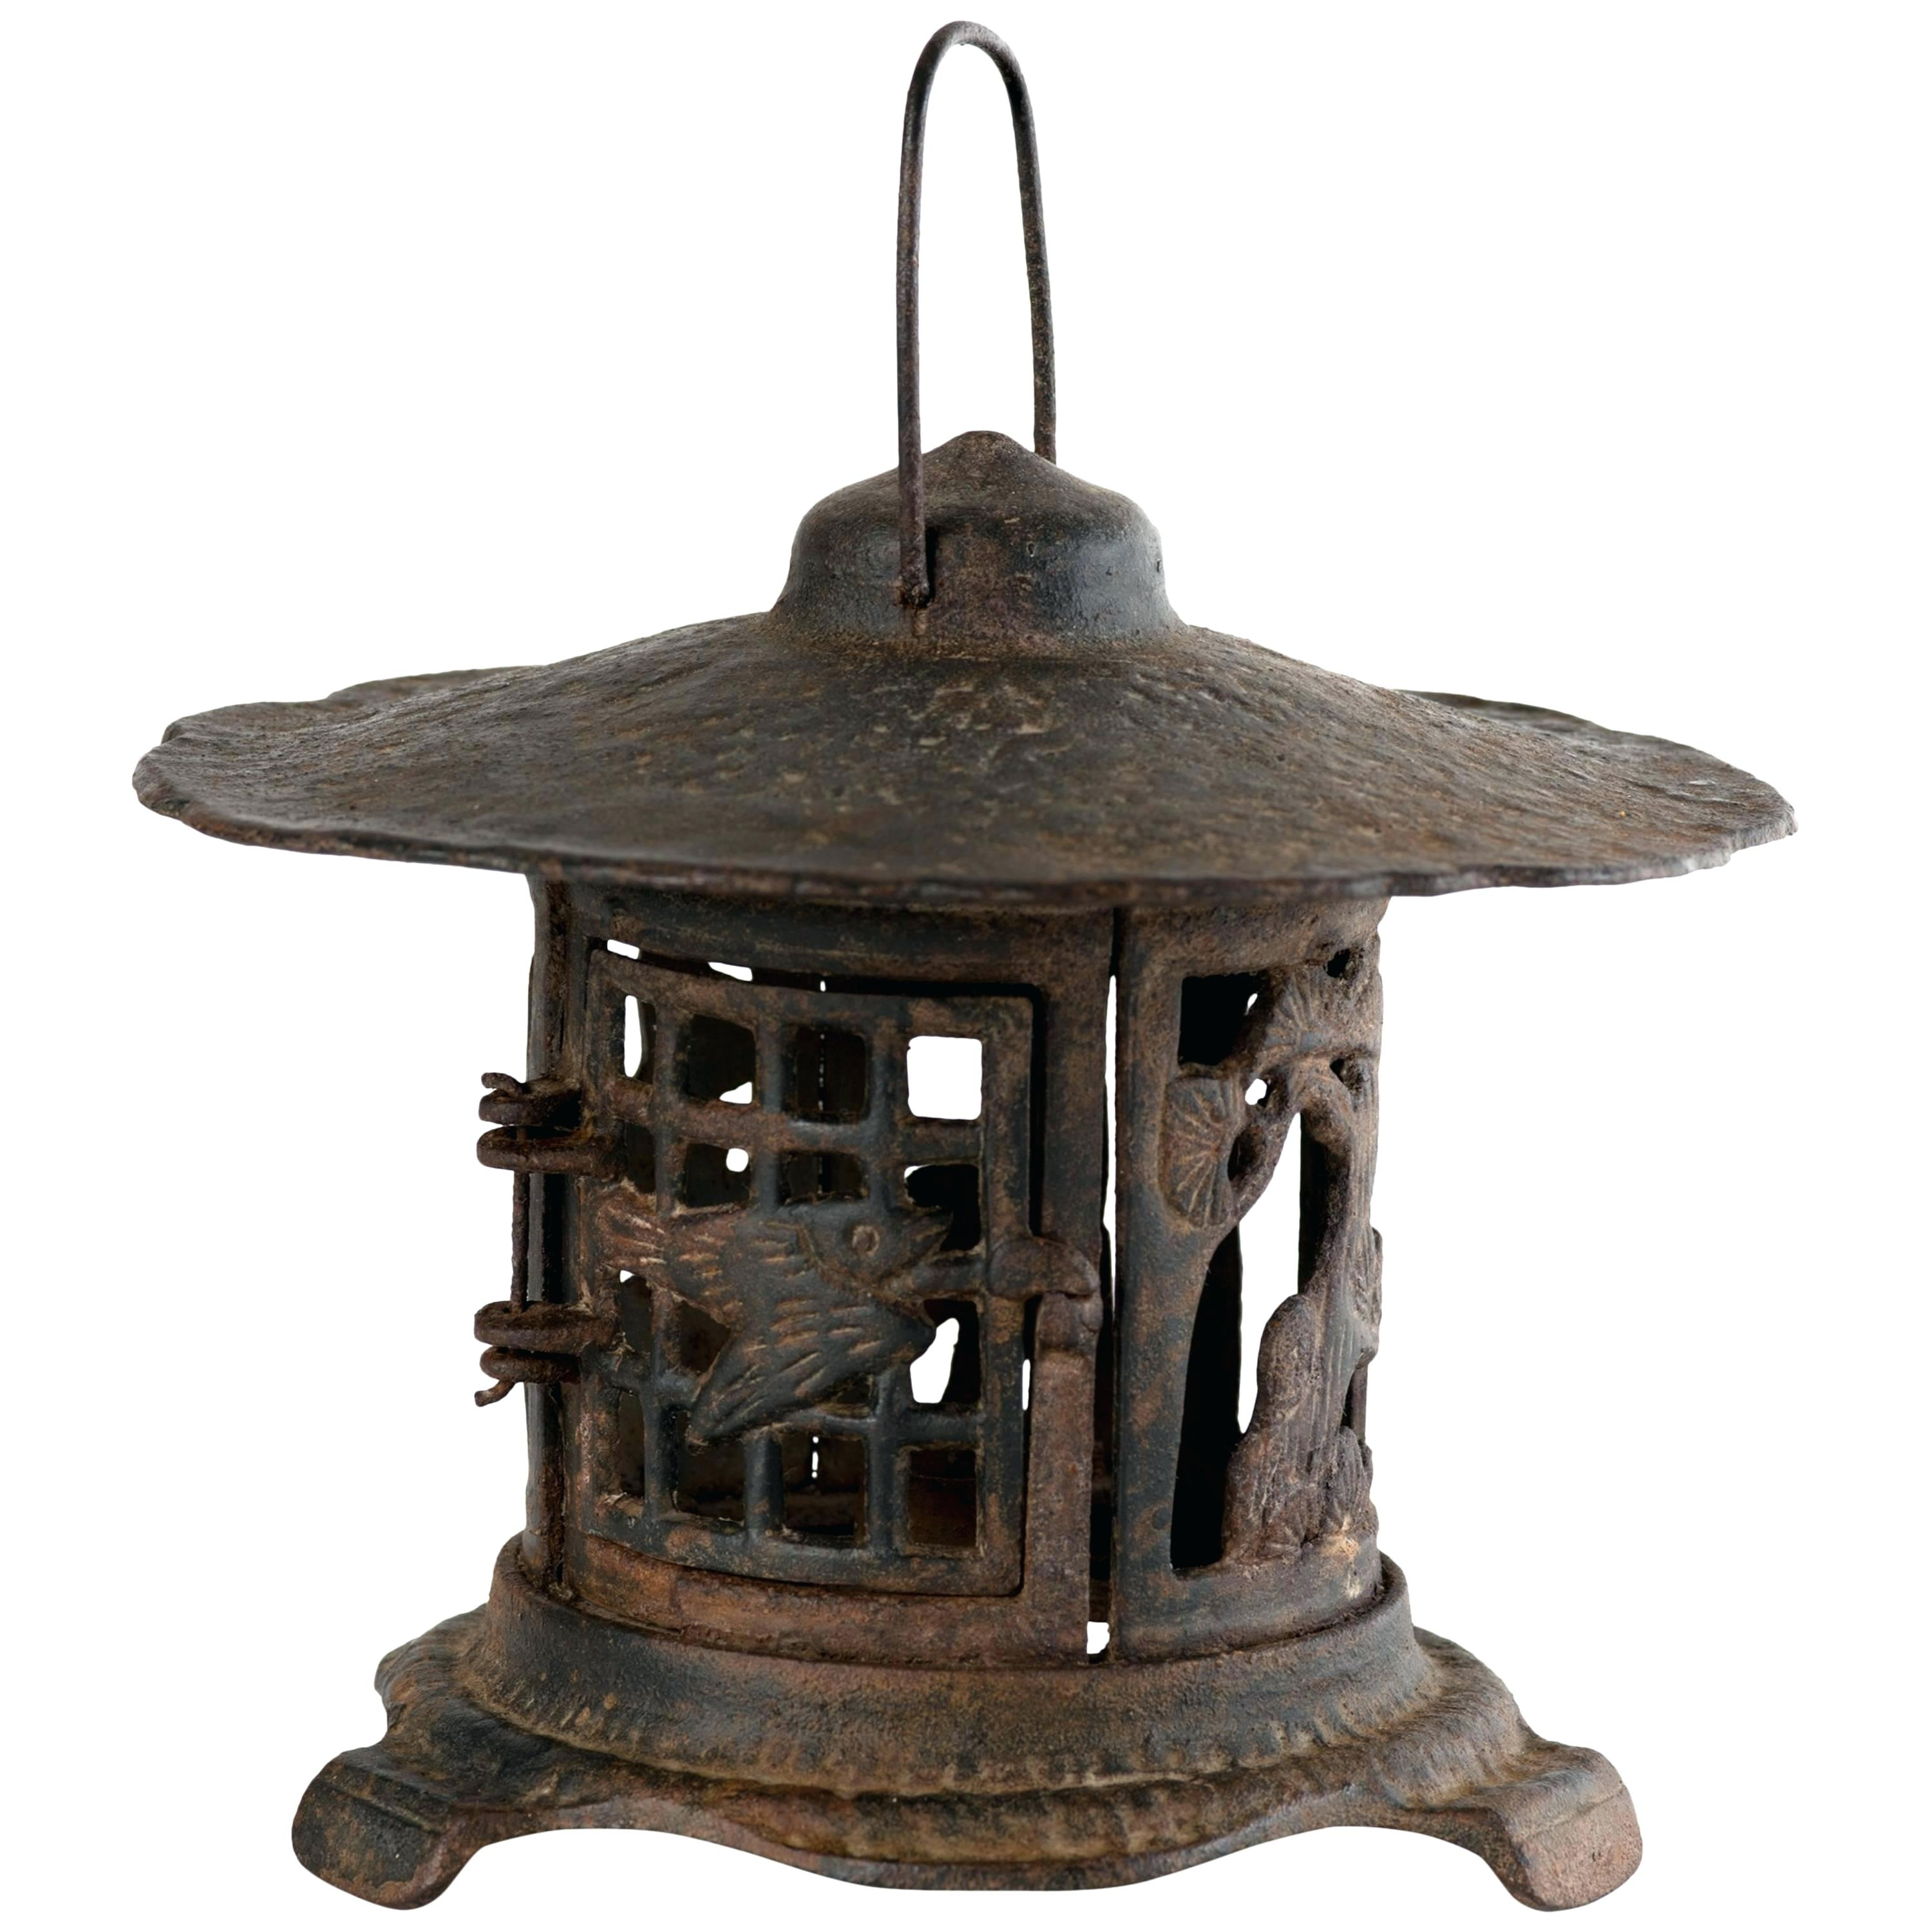 Japanese Garden Lanterns For Sale Garden Ornaments Garden Lanterns Intended For Favorite Outdoor Japanese Lanterns For Sale (Gallery 10 of 20)